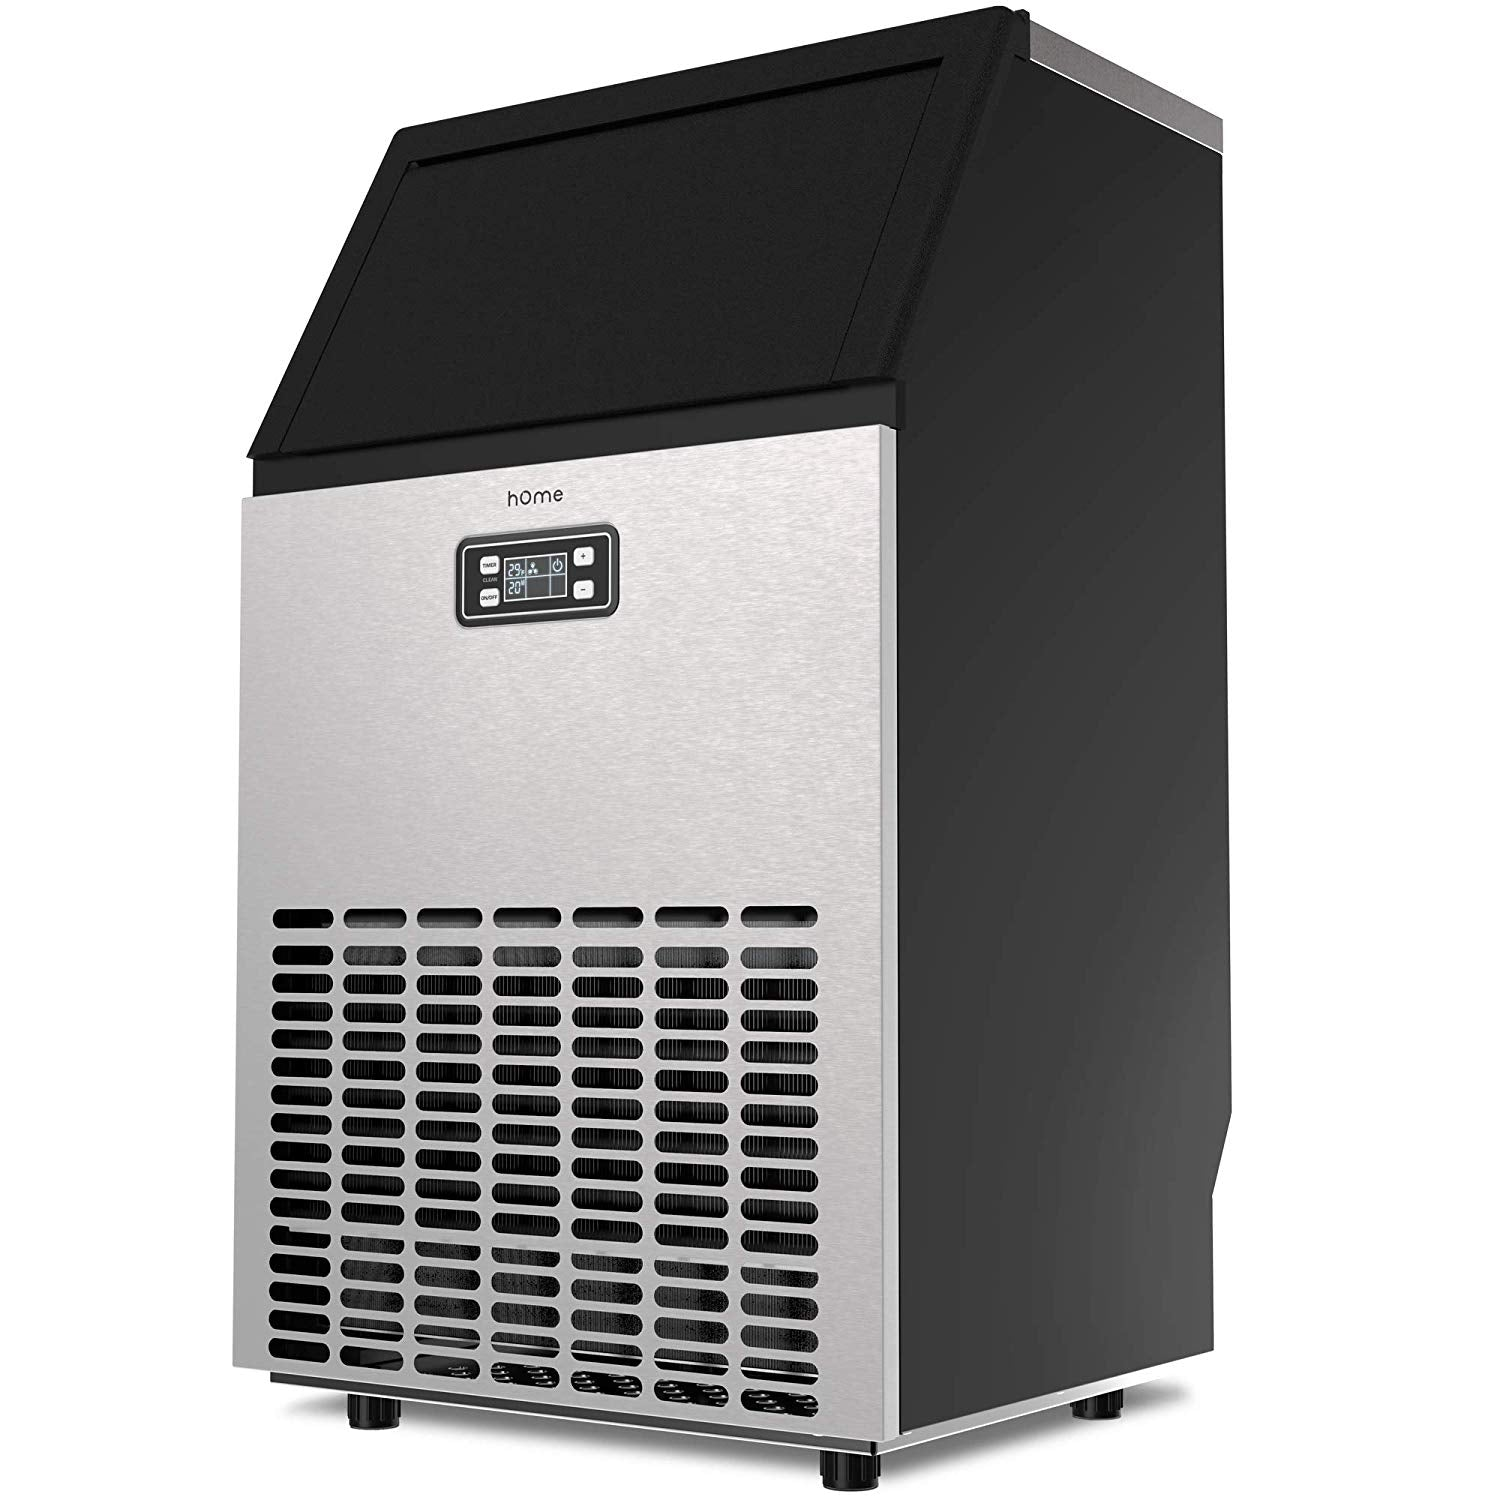 Freestanding Commercial Ice Maker Machine - 99 lbs Ice in 24 hrs with 29 lb Storage Capacity, for Restaurants, Includes Scoop and Connection Hoses